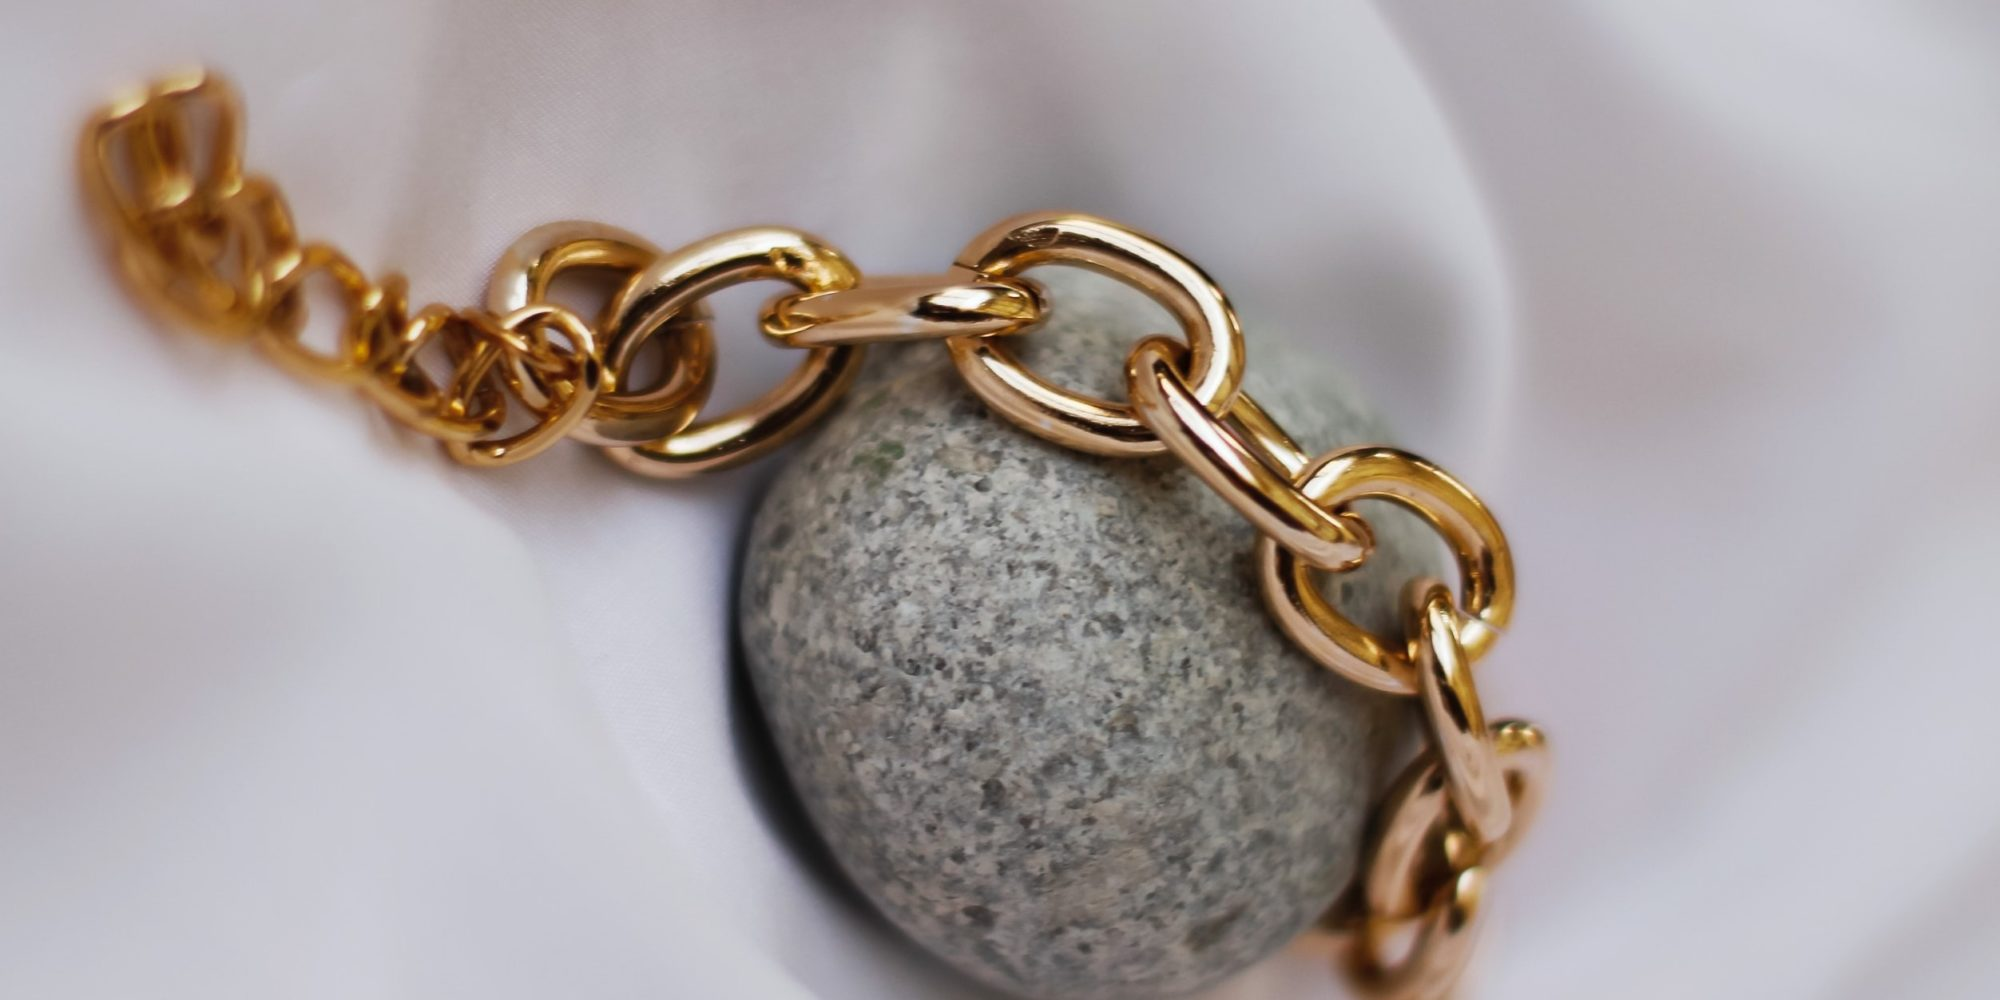 Can You Shower With Gold Plated Jewellery